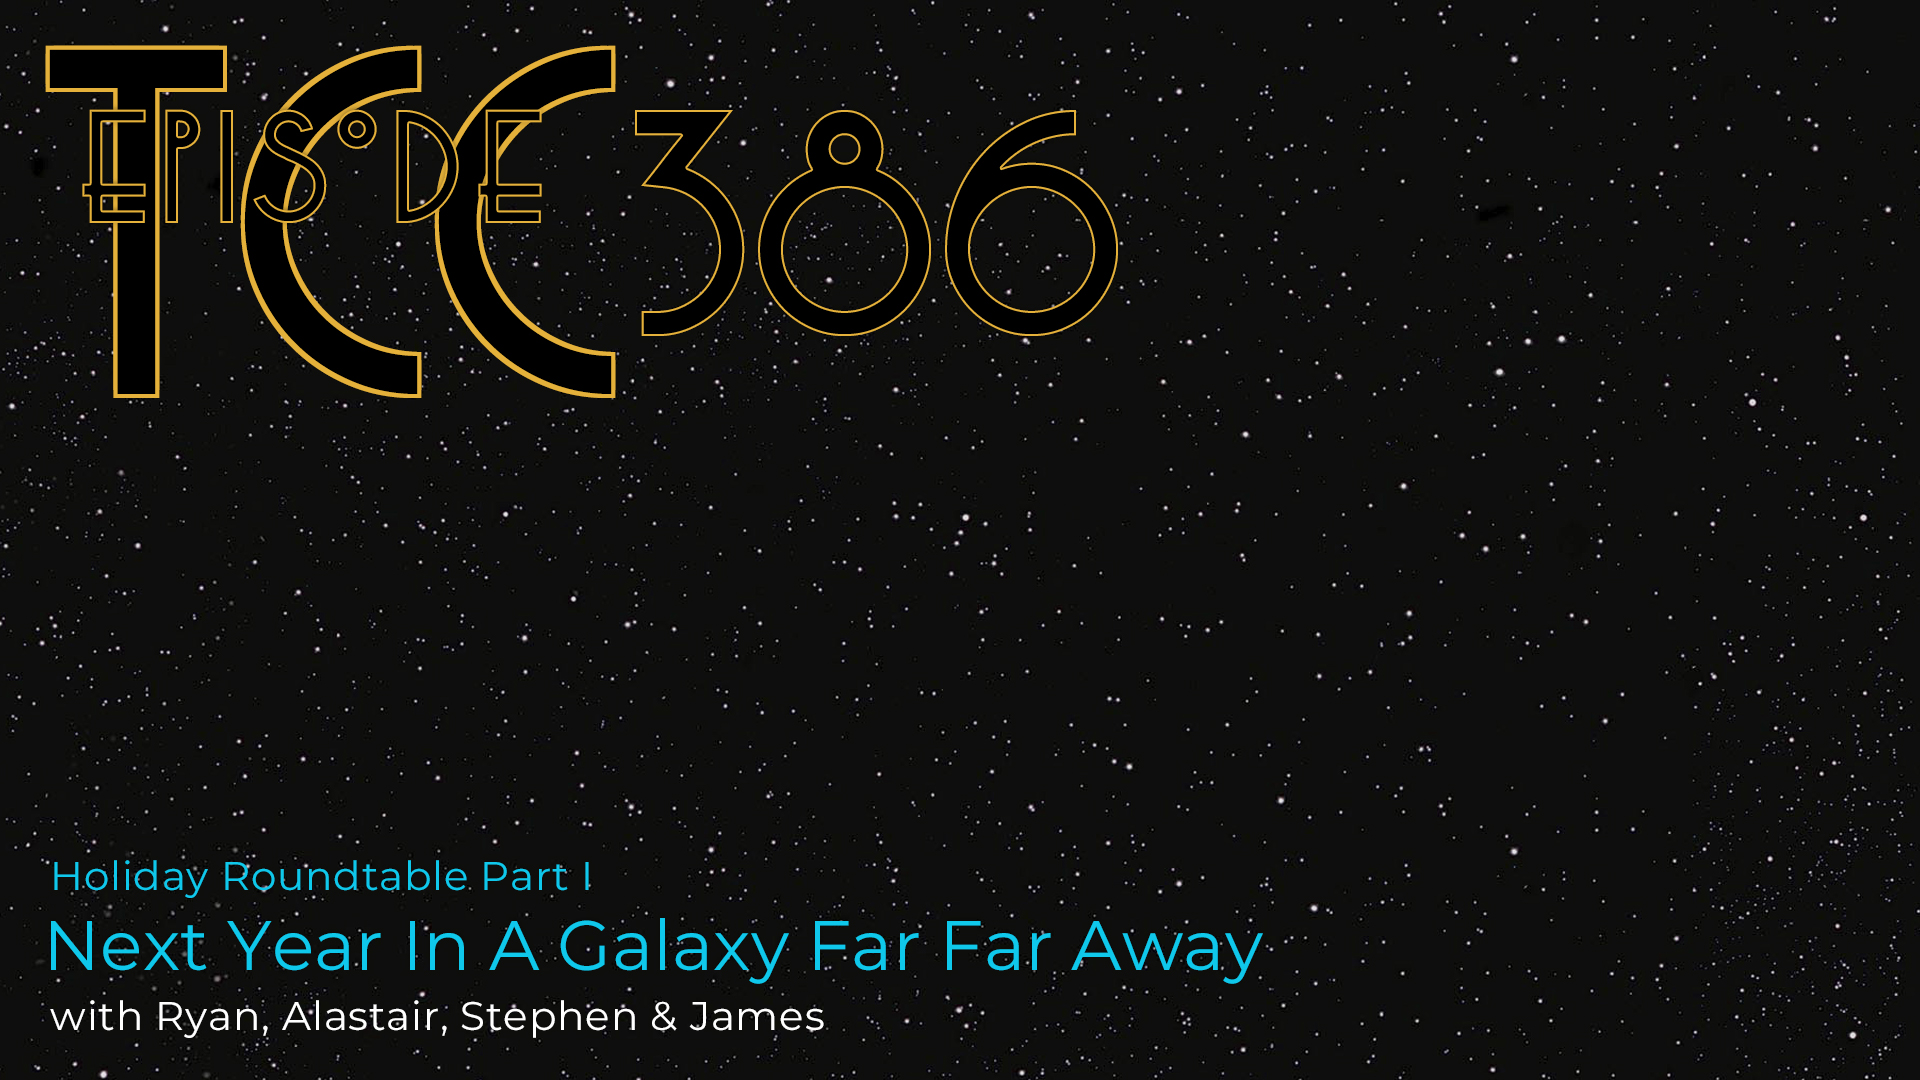 The Citadel Cafe 386: Next Year In A Galaxy Far Far Away